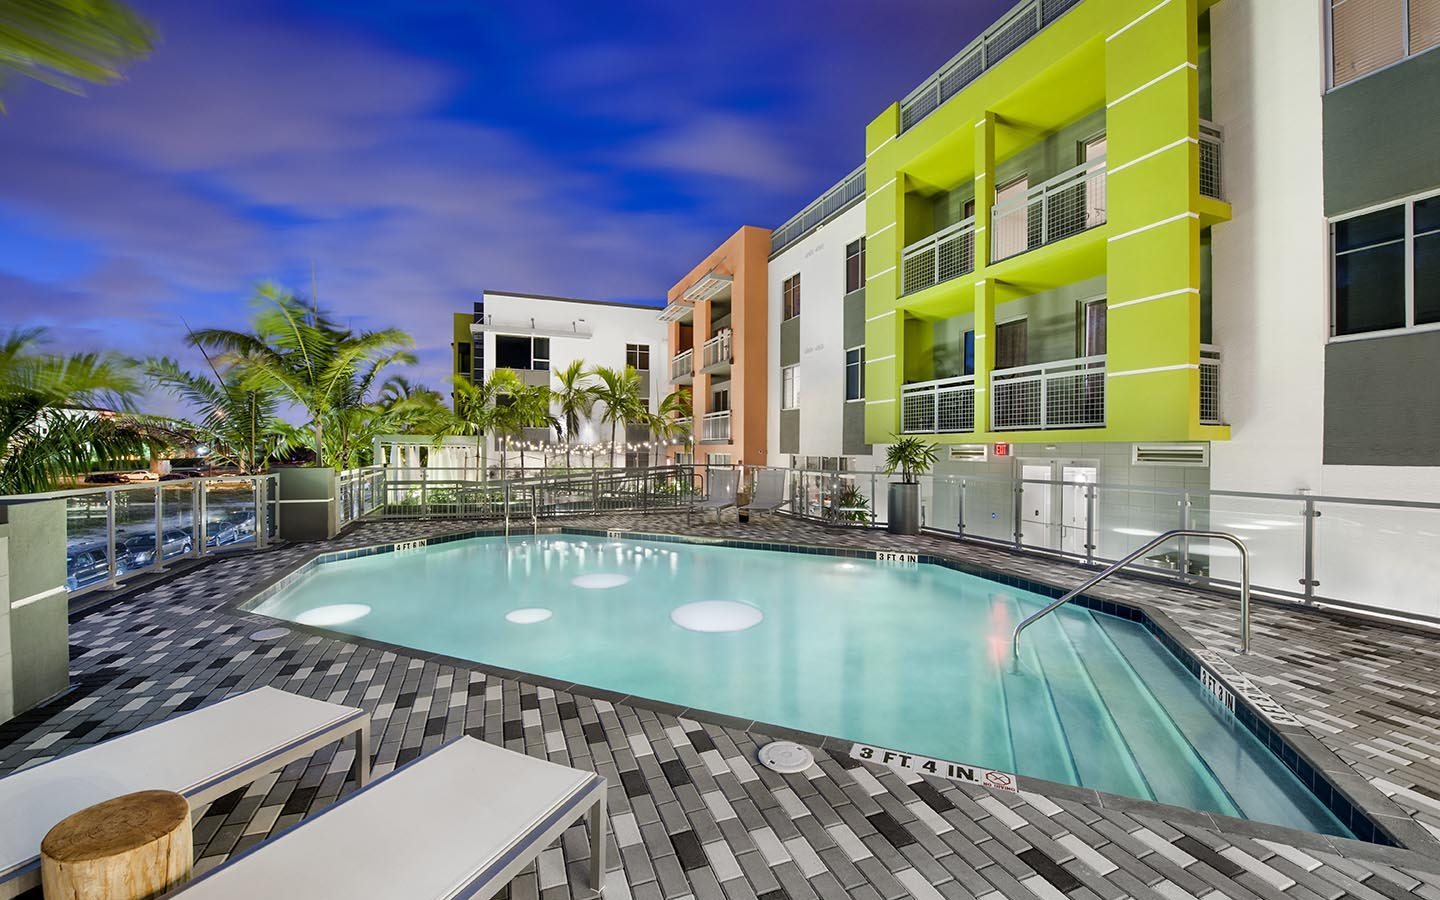 Pool Side Relaxing Area At Sofa Downtown Luxury Apartments Florida